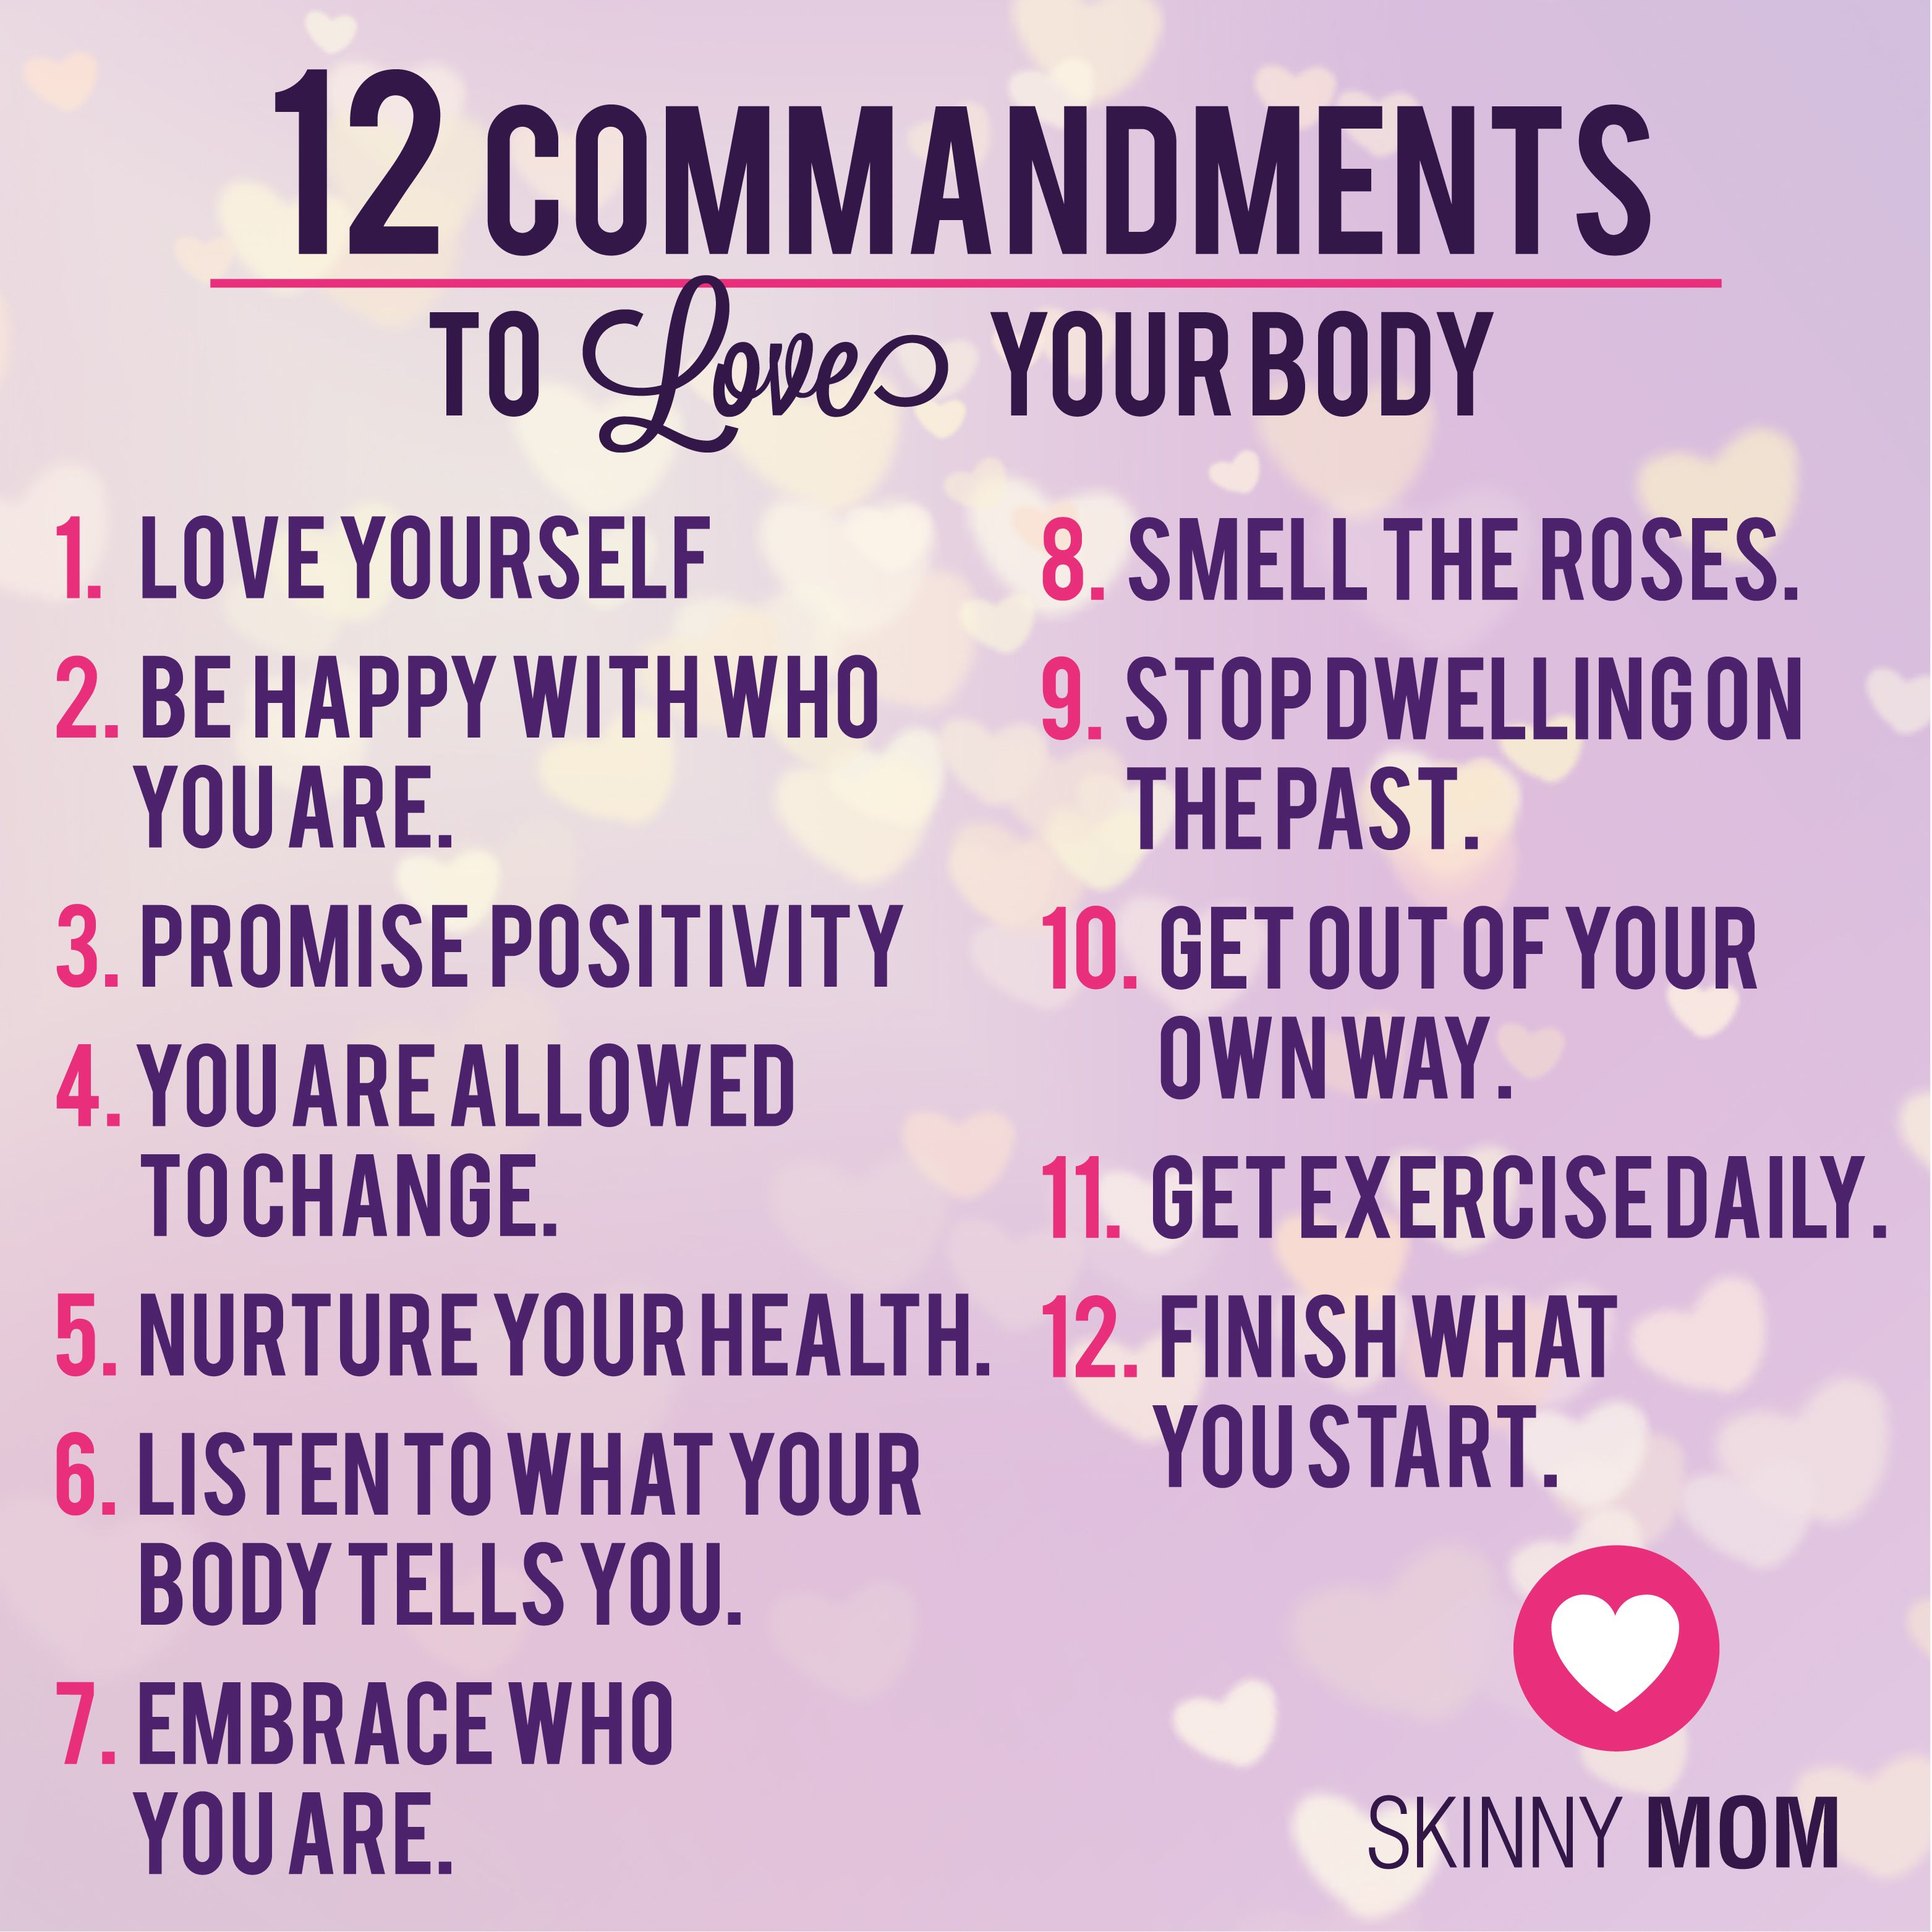 Love Your Body Quotes Magnificent 12 Commandments To Love Your Body  Pinterest  Quote Citation And